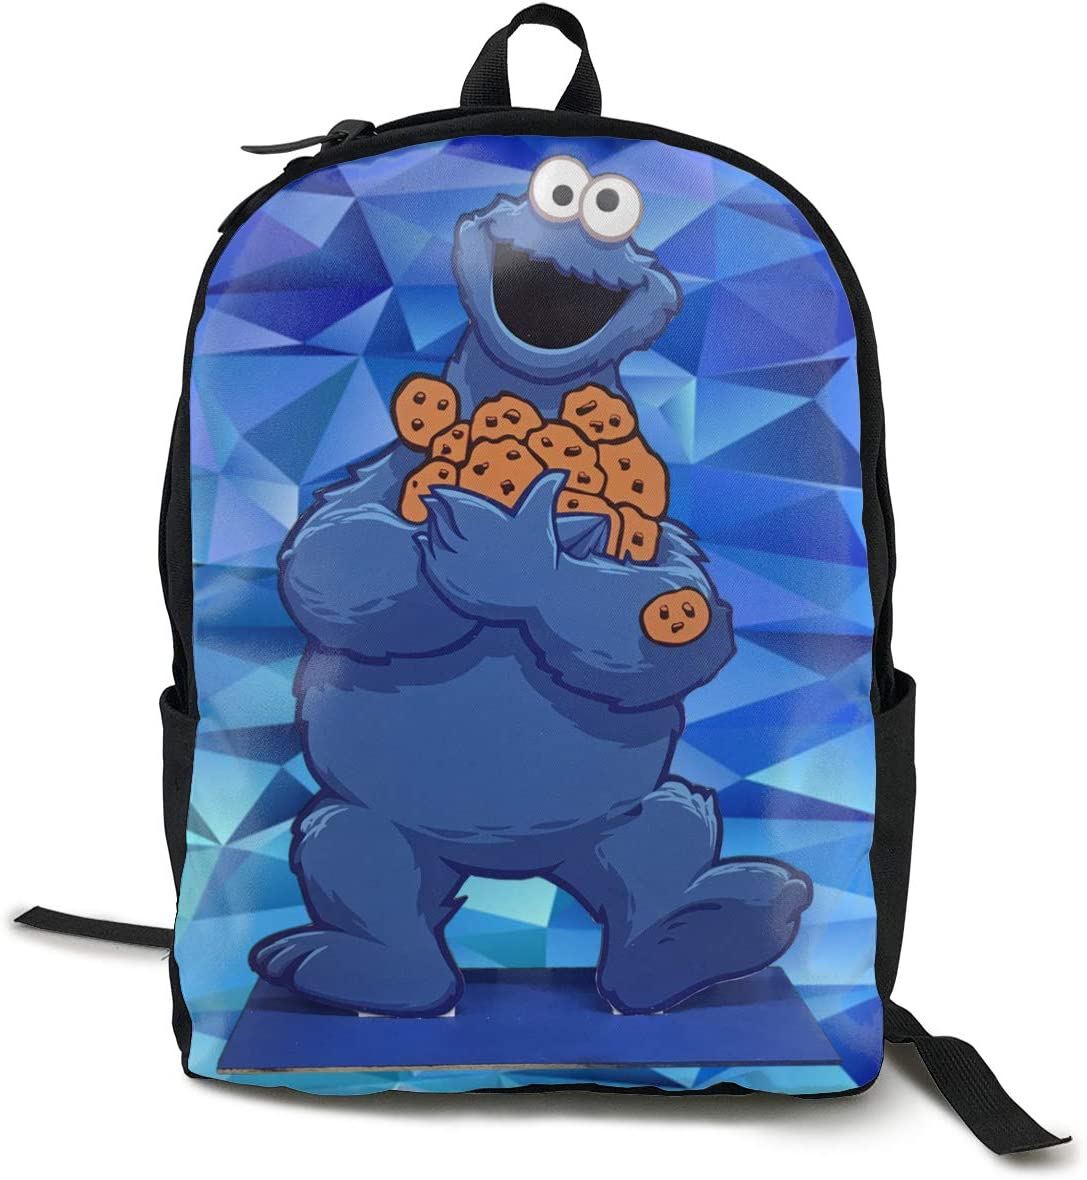 Tondgs Cookie-Monster Children Casual Style Backpack Daypack Bookbag Laptop School Bag Black One Size